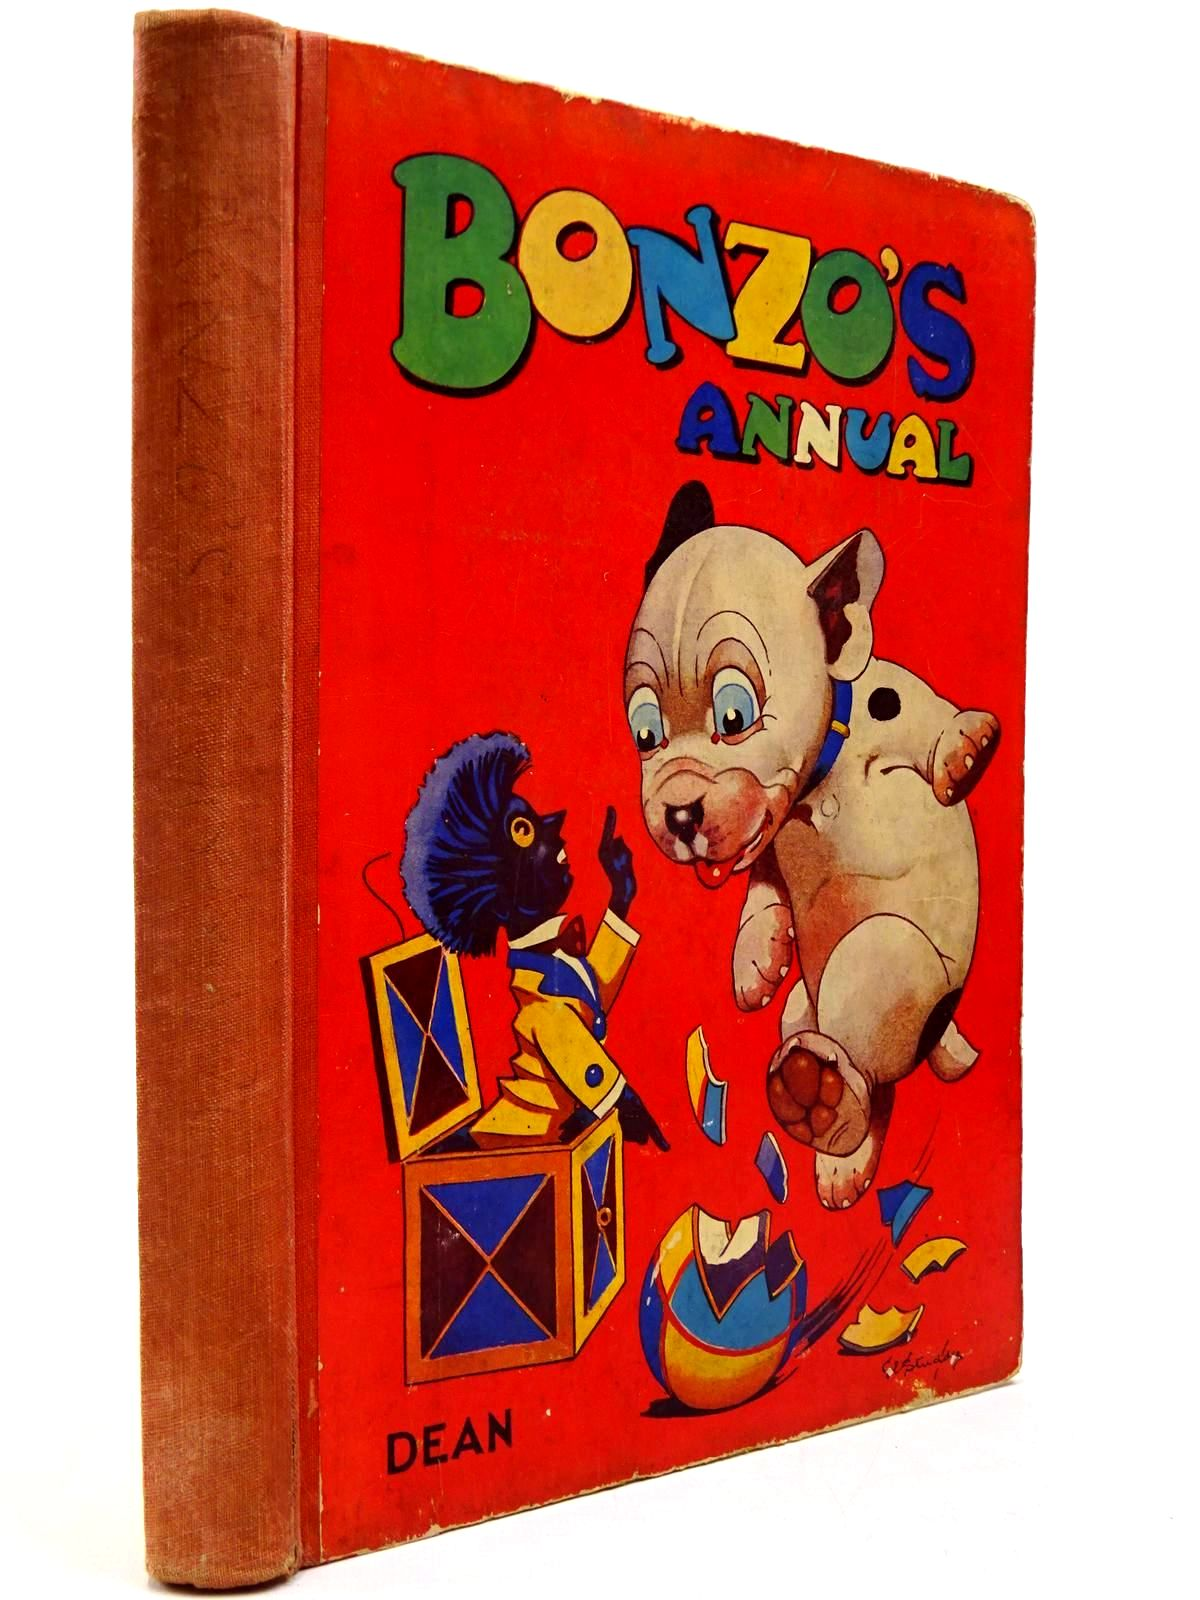 Photo of BONZO'S ANNUAL 1947 written by Studdy, G.E. illustrated by Studdy, G.E. published by Dean & Son Ltd. (STOCK CODE: 2130432)  for sale by Stella & Rose's Books